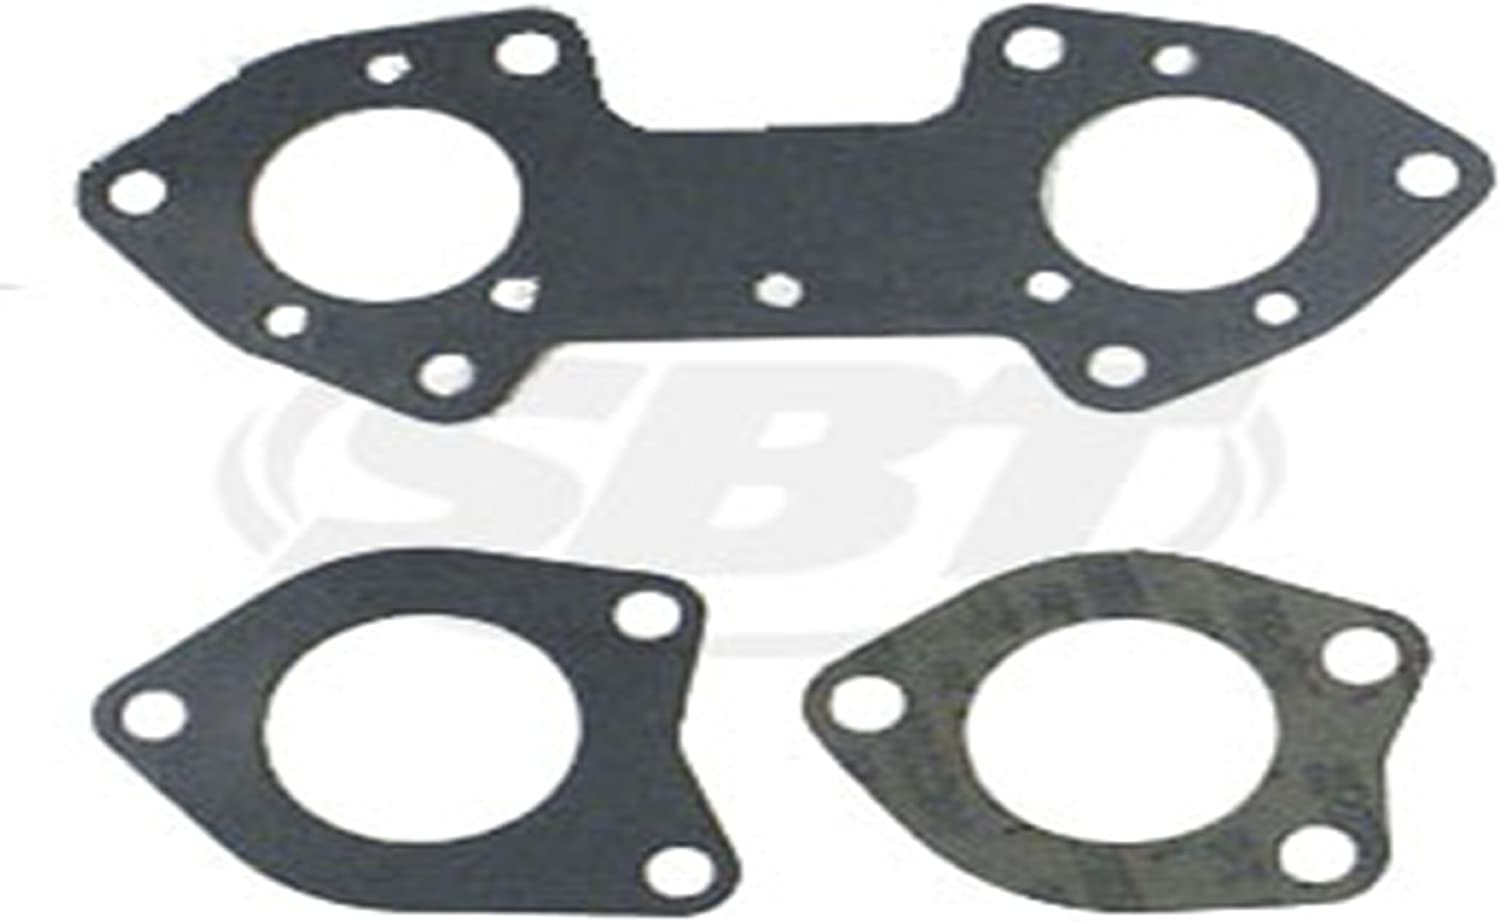 Kawasaki 650 Exhaust Gasket Kit 650 1986 1987 1988 1989 1990 1991 1992 1993 1994 1995 1996